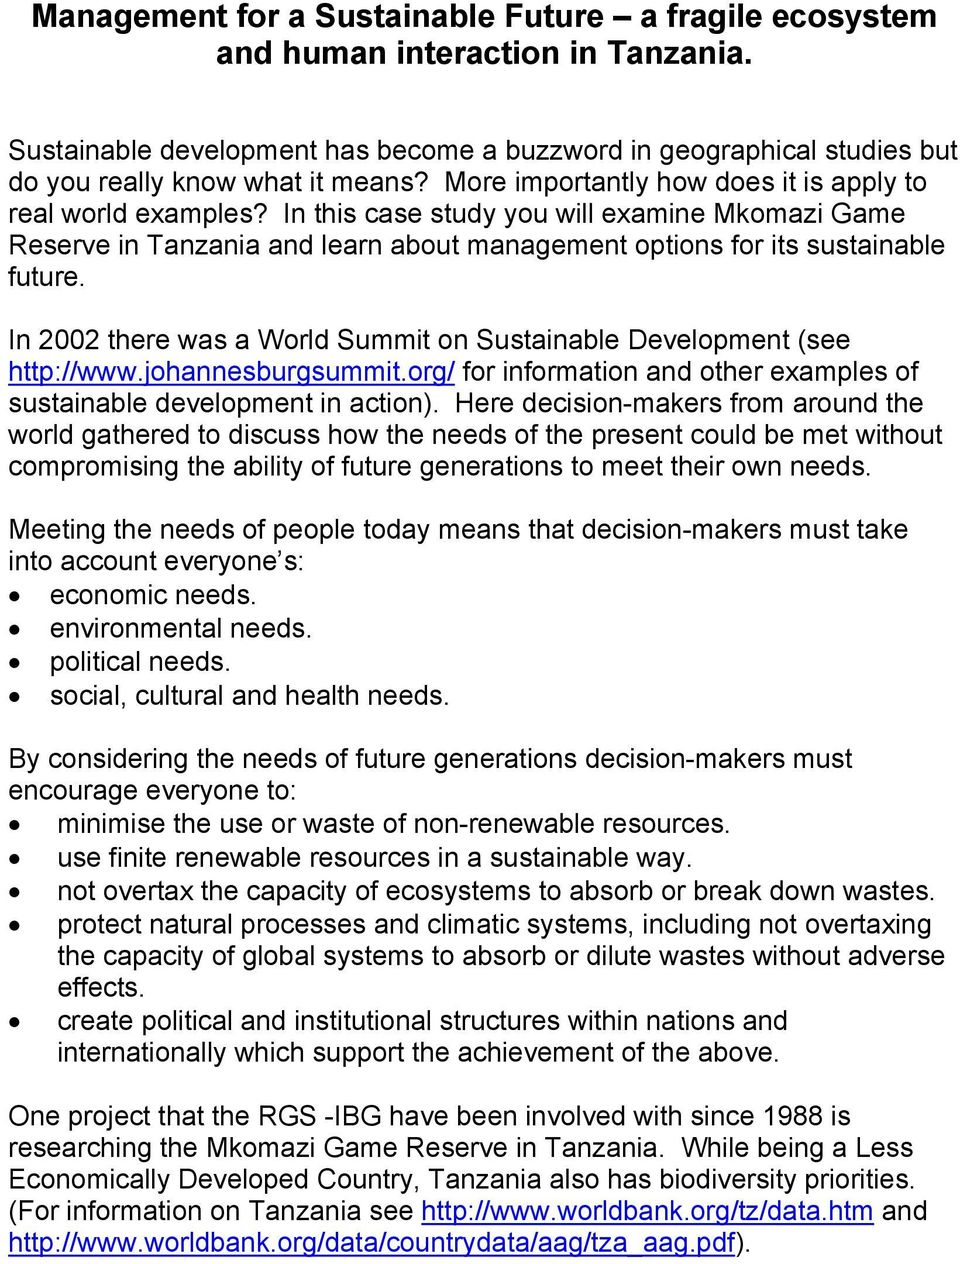 In 2002 there was a World Summit on Sustainable Development (see http://www.johannesburgsummit.org/ for information and other examples of sustainable development in action).